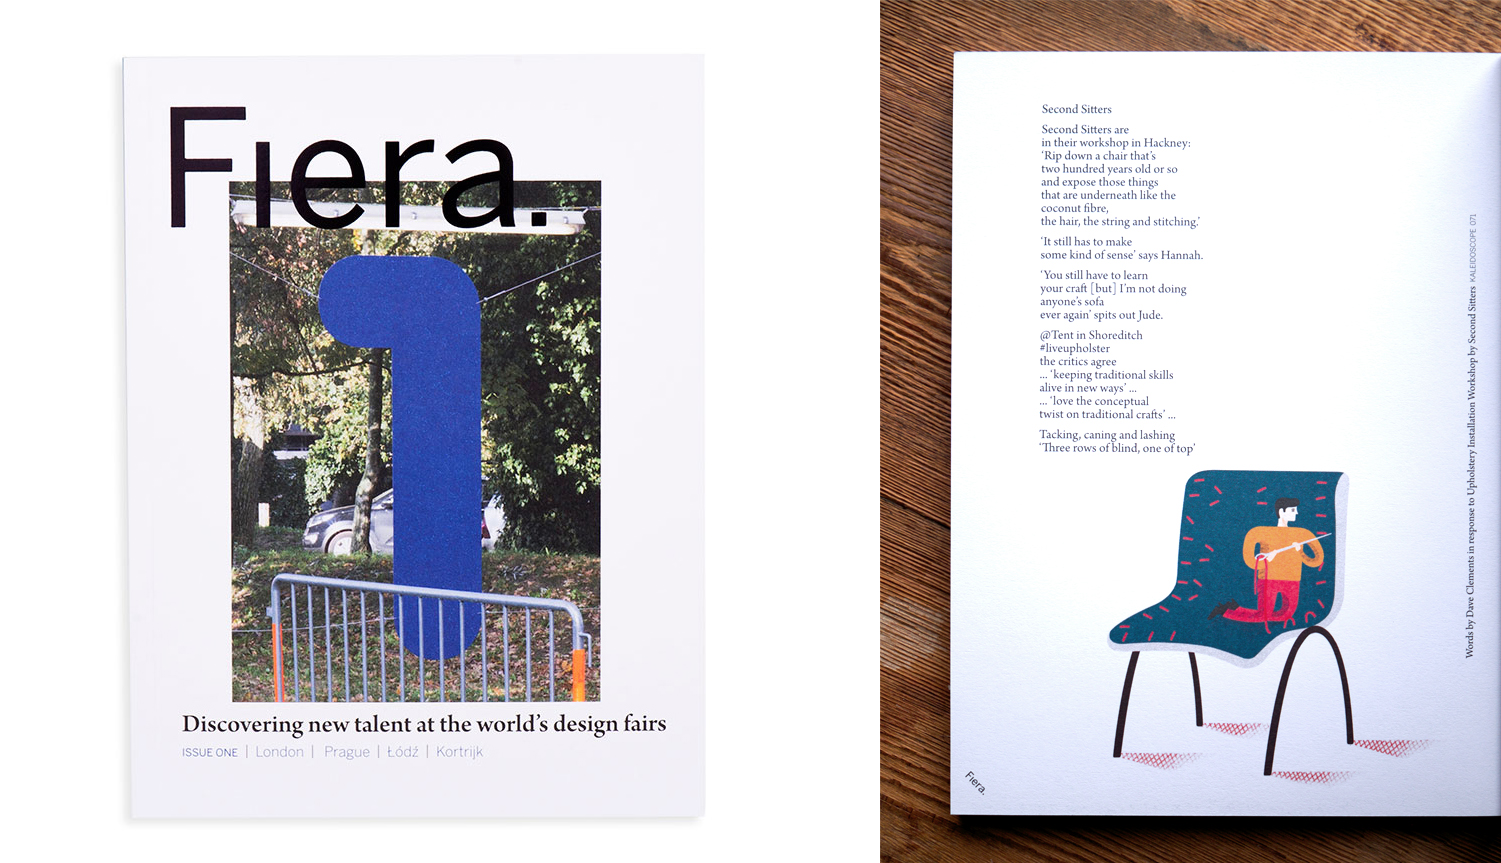 Hannah Stanton, Fiera Magazine, Second Sitters, Upholstery, Confessions of a Design Geek, Katie Treggiden, London